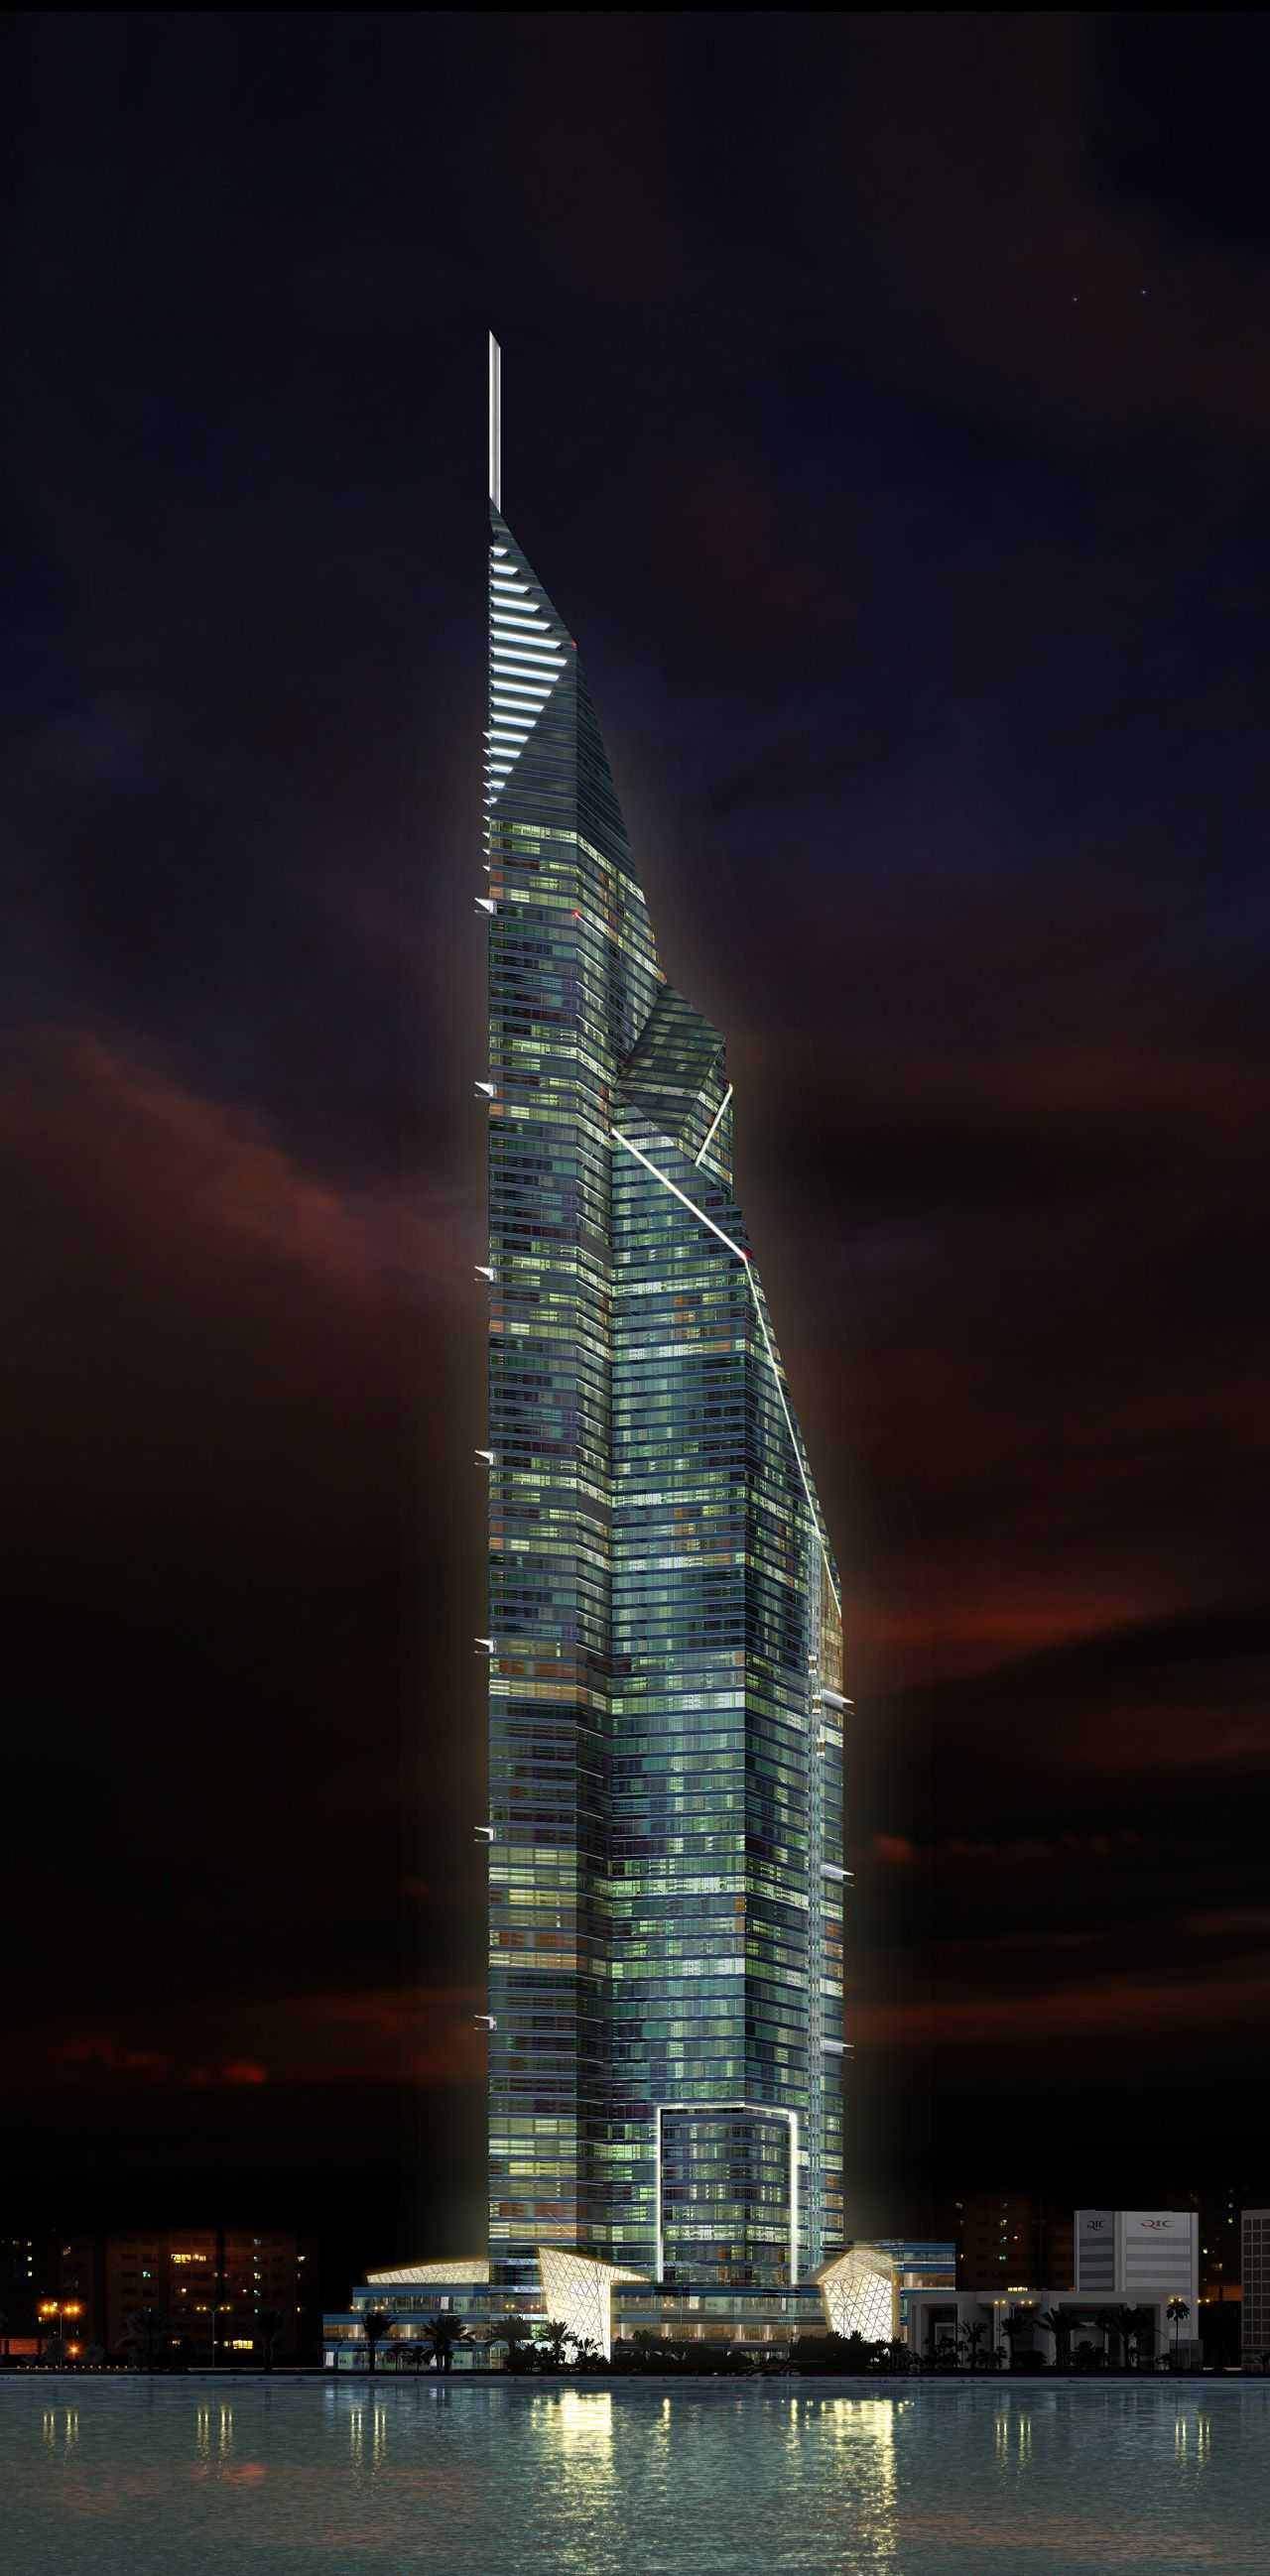 And 6 lusail katara hotel doha qatar pictures to pin on pinterest - Dubai Towers Doha Qatar By Rmjm Architects 84 Floors Height 445m